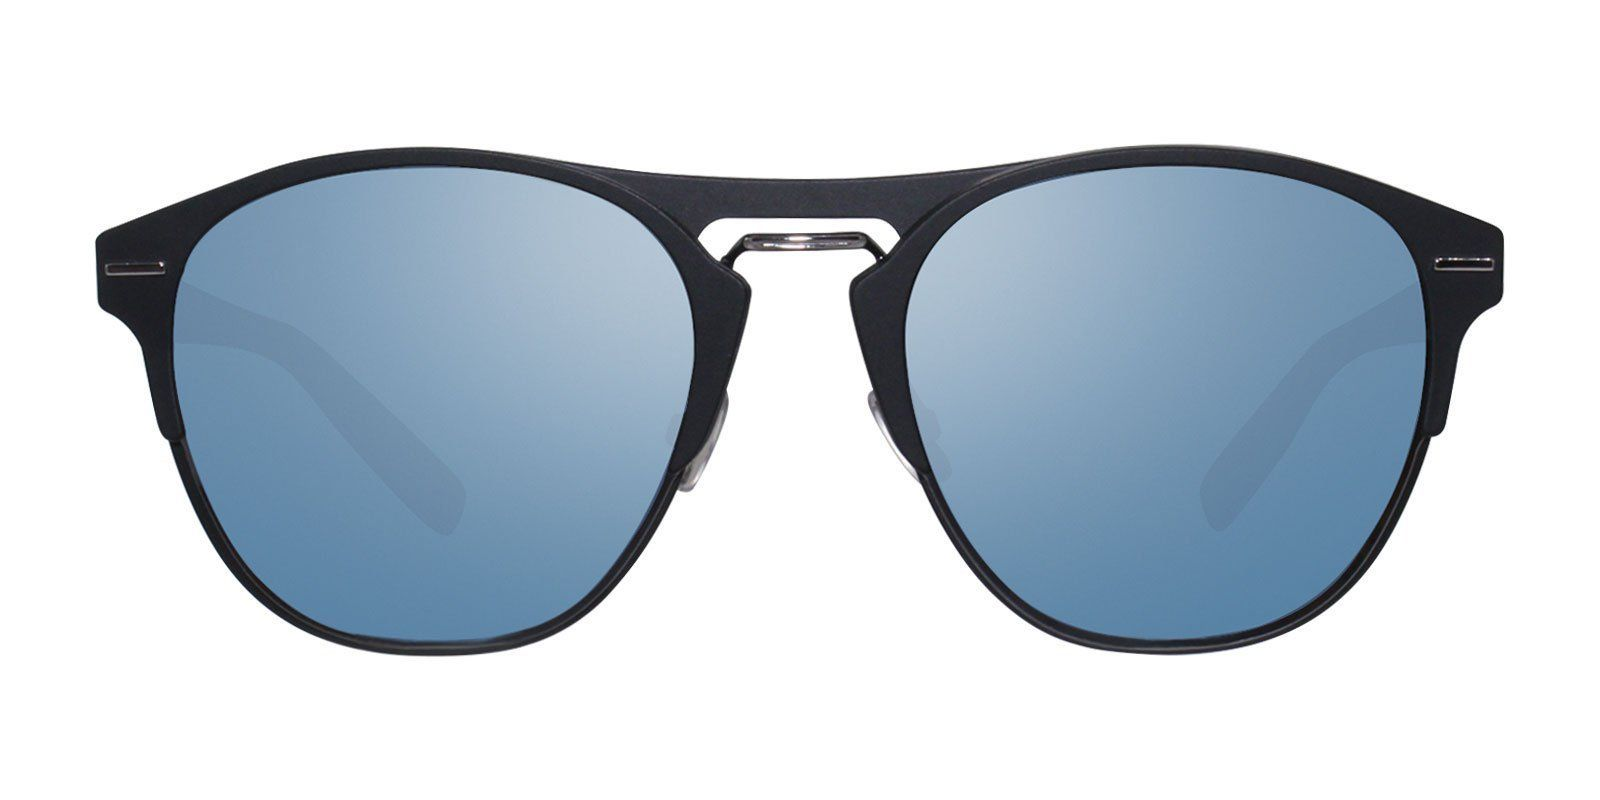 b1628711fd2 Dior - Chrono Black - Blue sunglasses